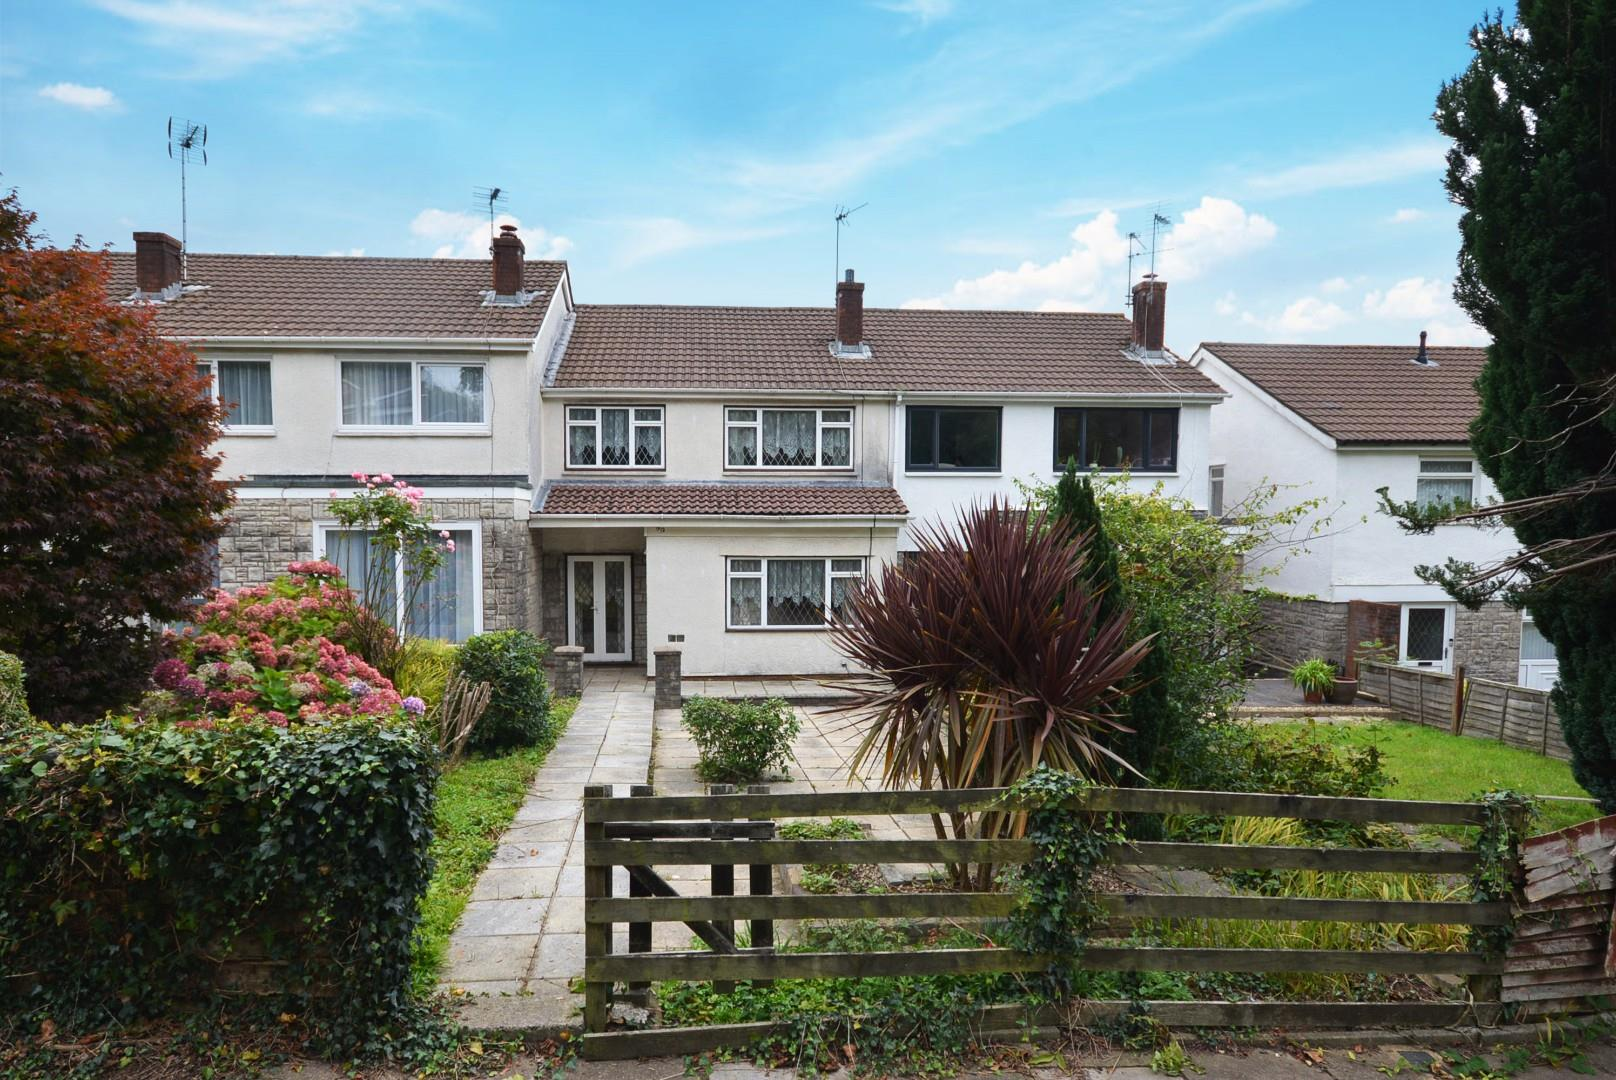 3 bed terraced house for sale in Ael-Y-Bryn, Cardiff, CF23